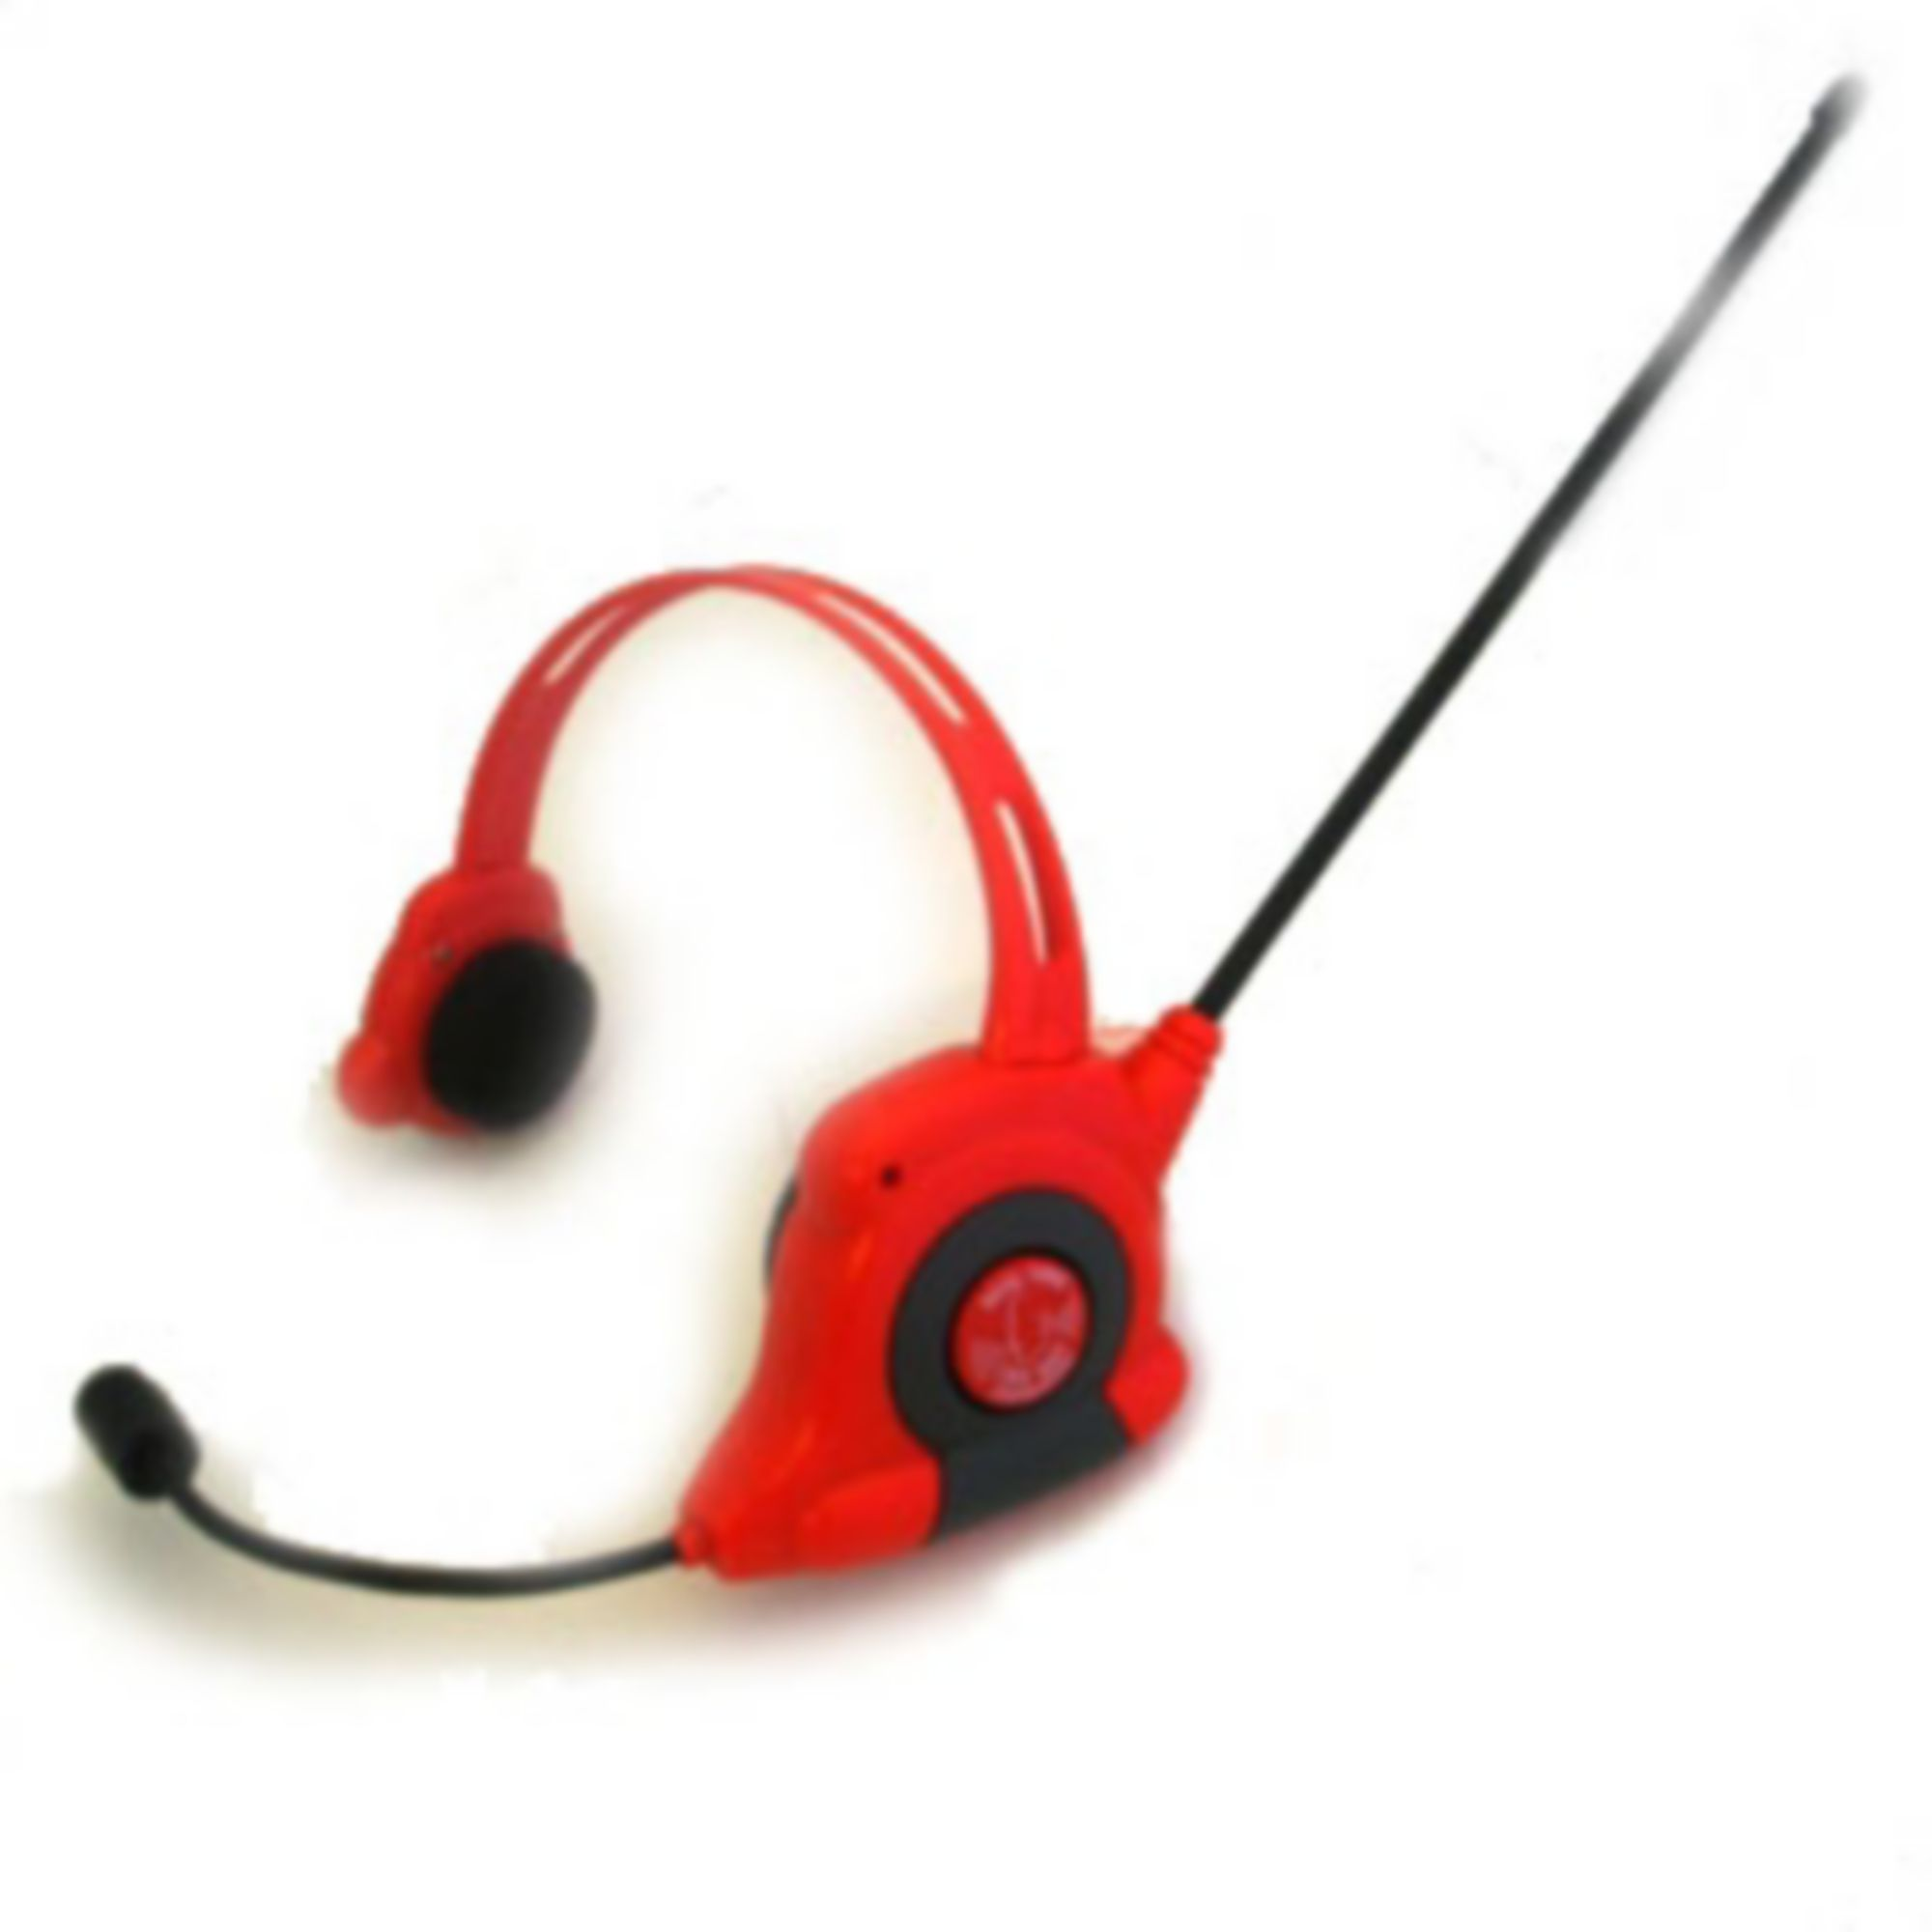 Walkie talkie headset